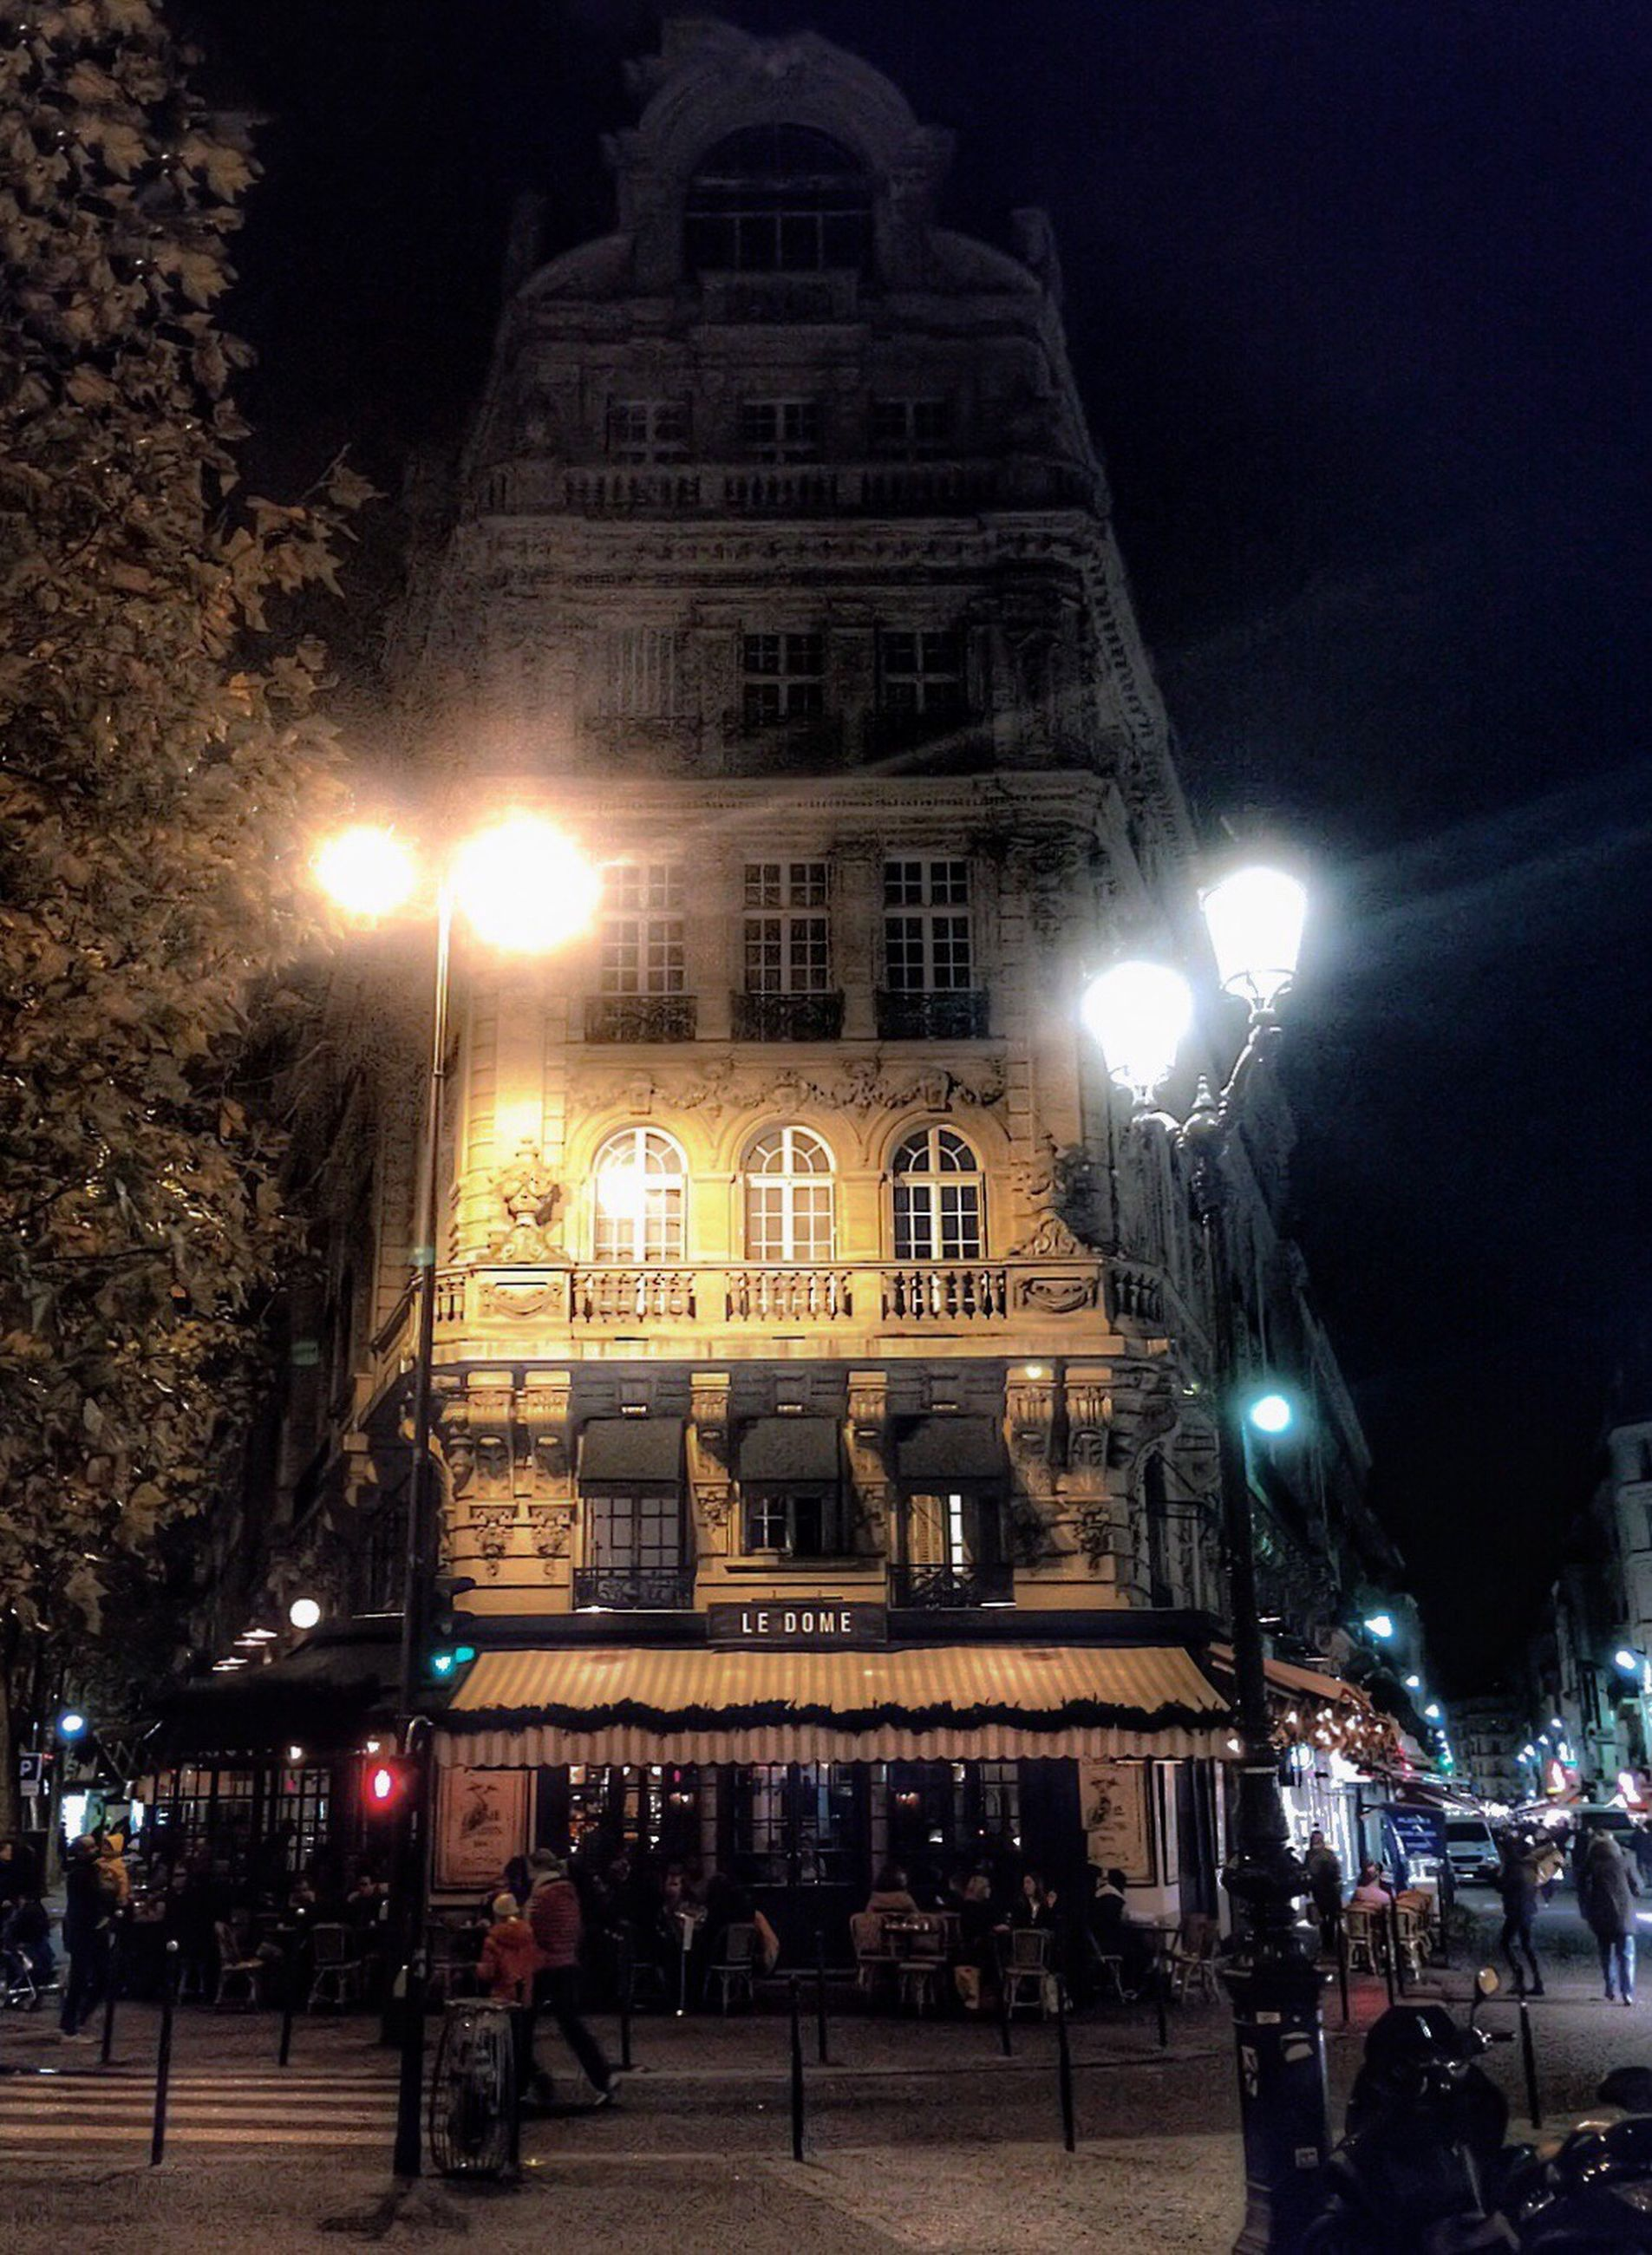 building exterior, illuminated, night, architecture, built structure, street light, street, city, lighting equipment, city life, incidental people, sky, building, city street, large group of people, low angle view, outdoors, car, road